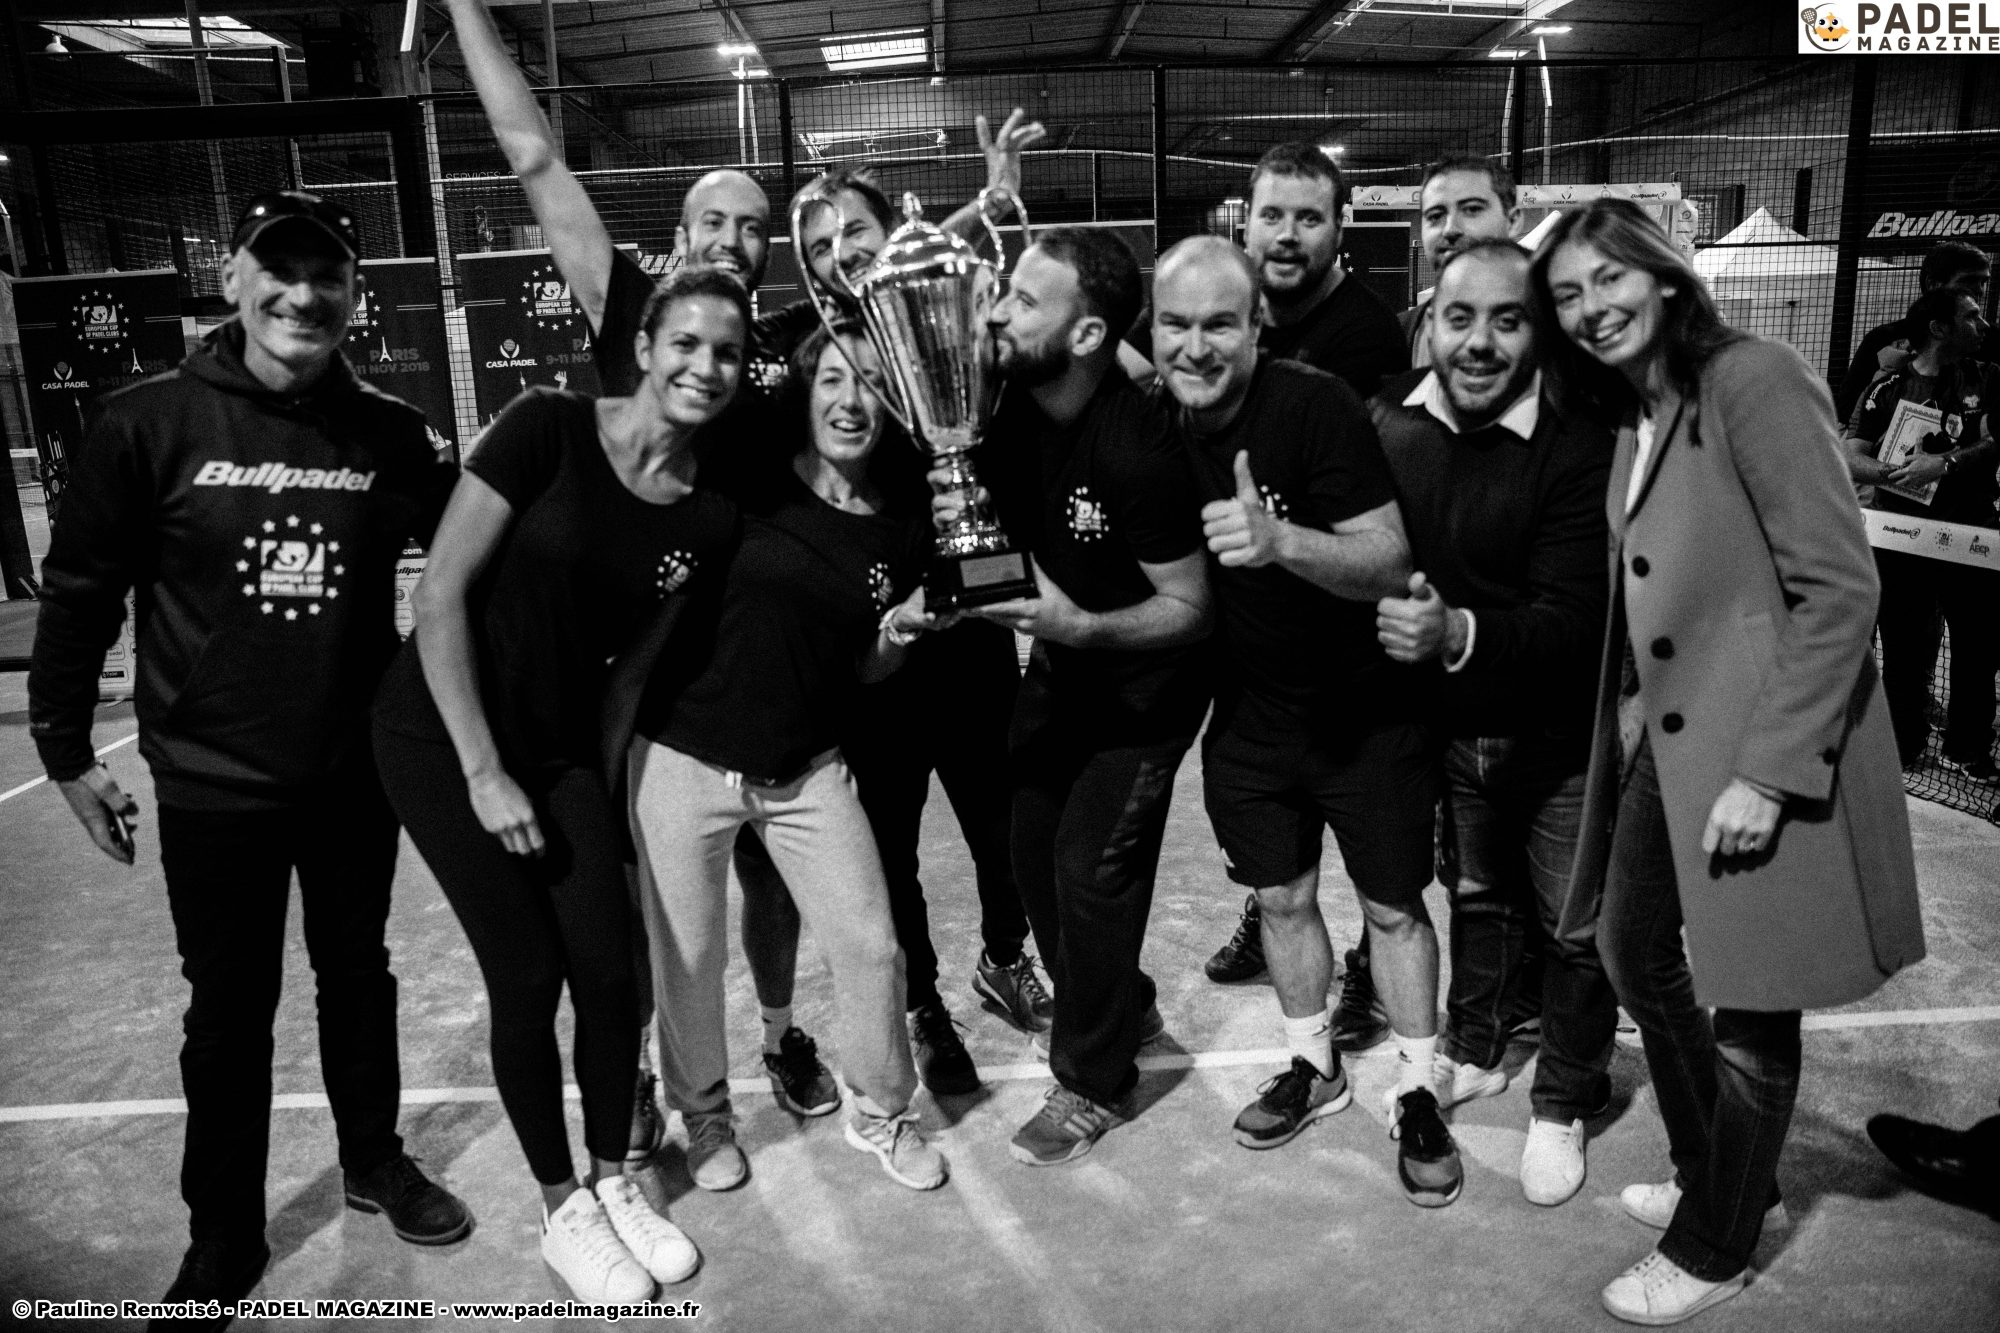 Home Padel / Padel France Distribution wins the Euro Padel Cup 2018